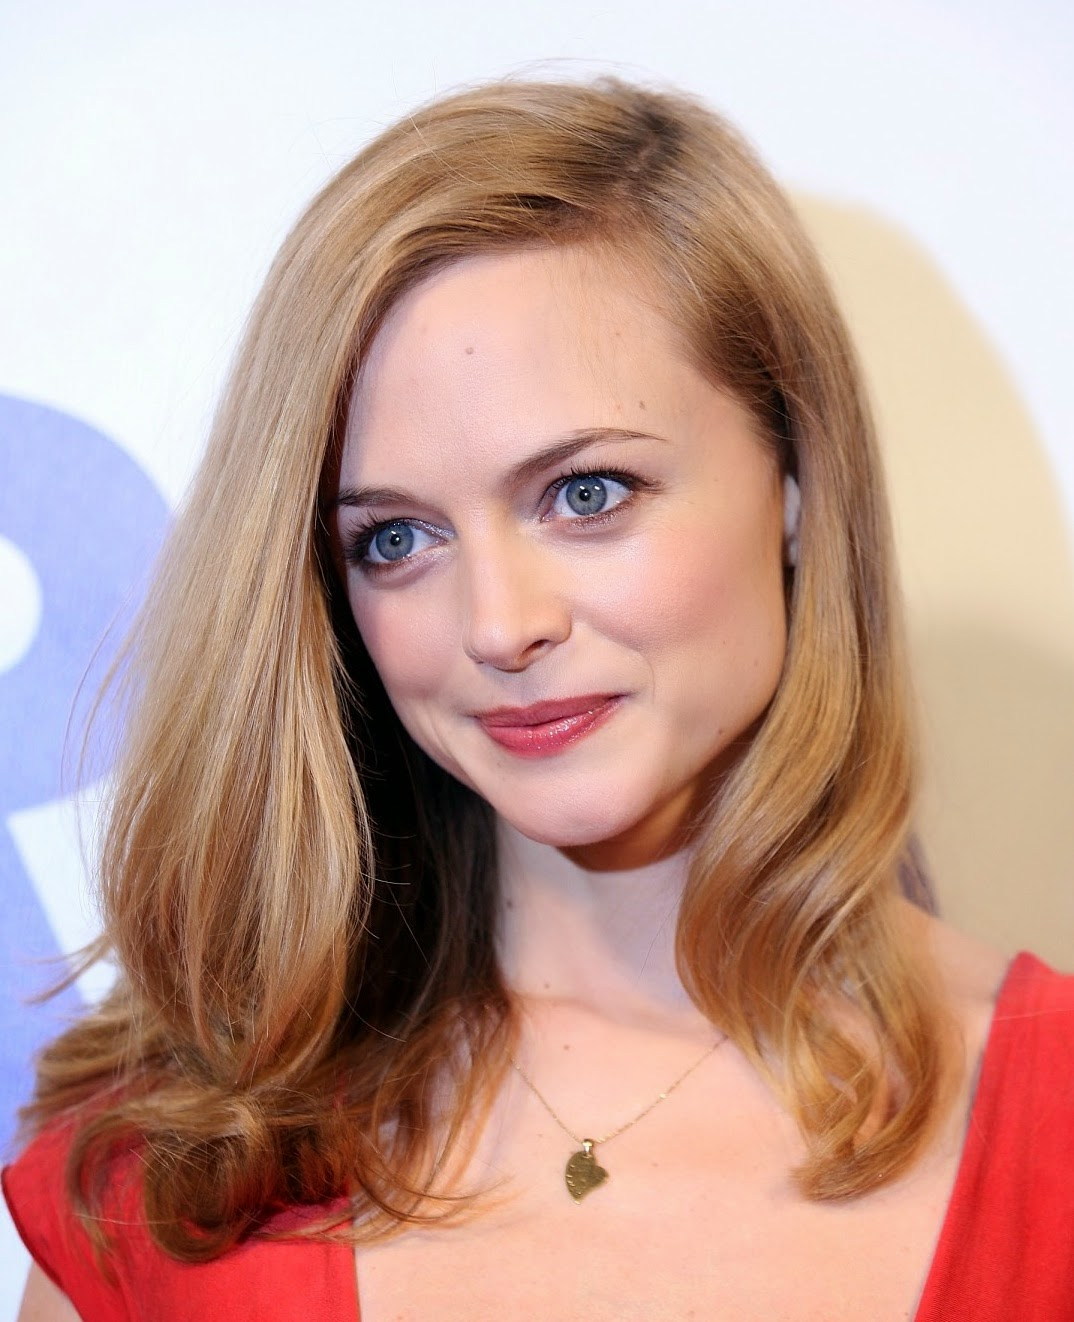 http://www.bestcelebrityhairstyles.com/wp-content/uploads/2009/10/Heather-Graham-Hair-7.jpg